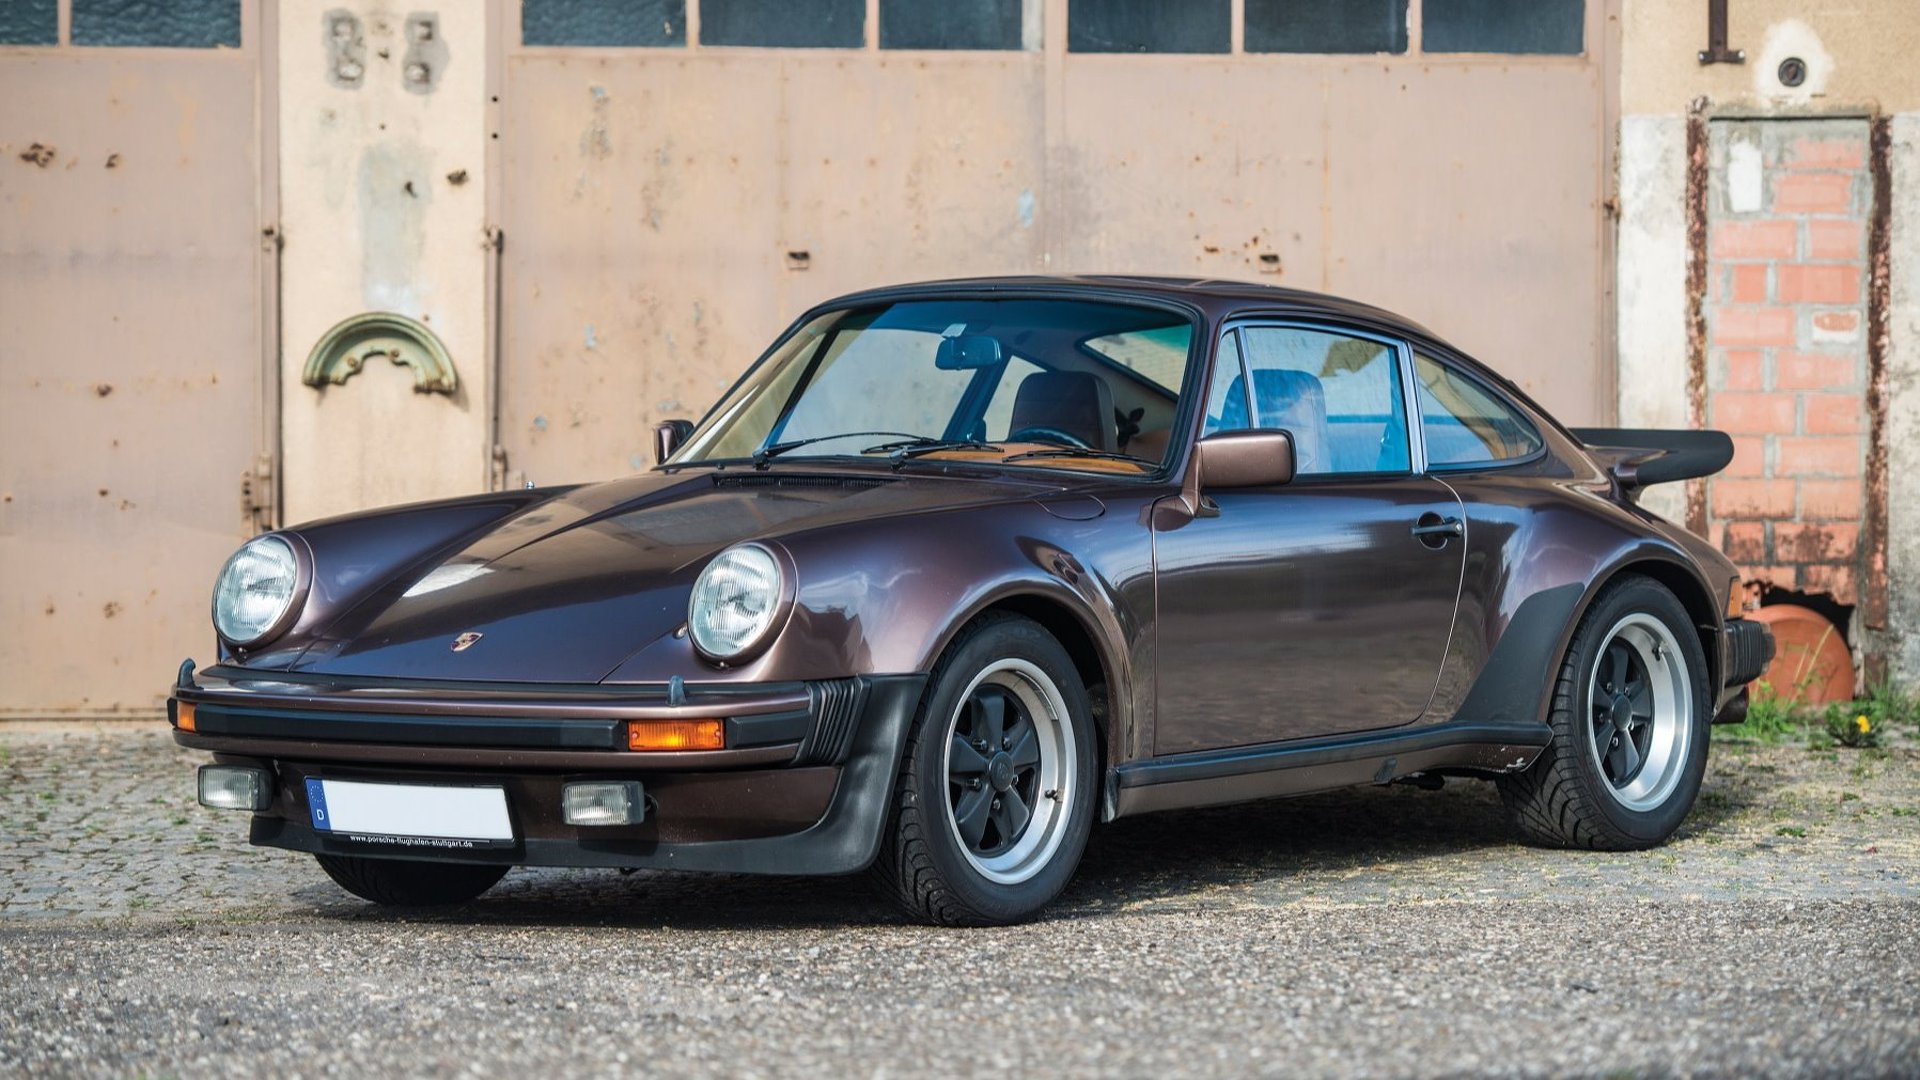 Air Cooled Porsche >> Air Cooled Porsche 911 Collection Sells For 6 3 Million At Auction